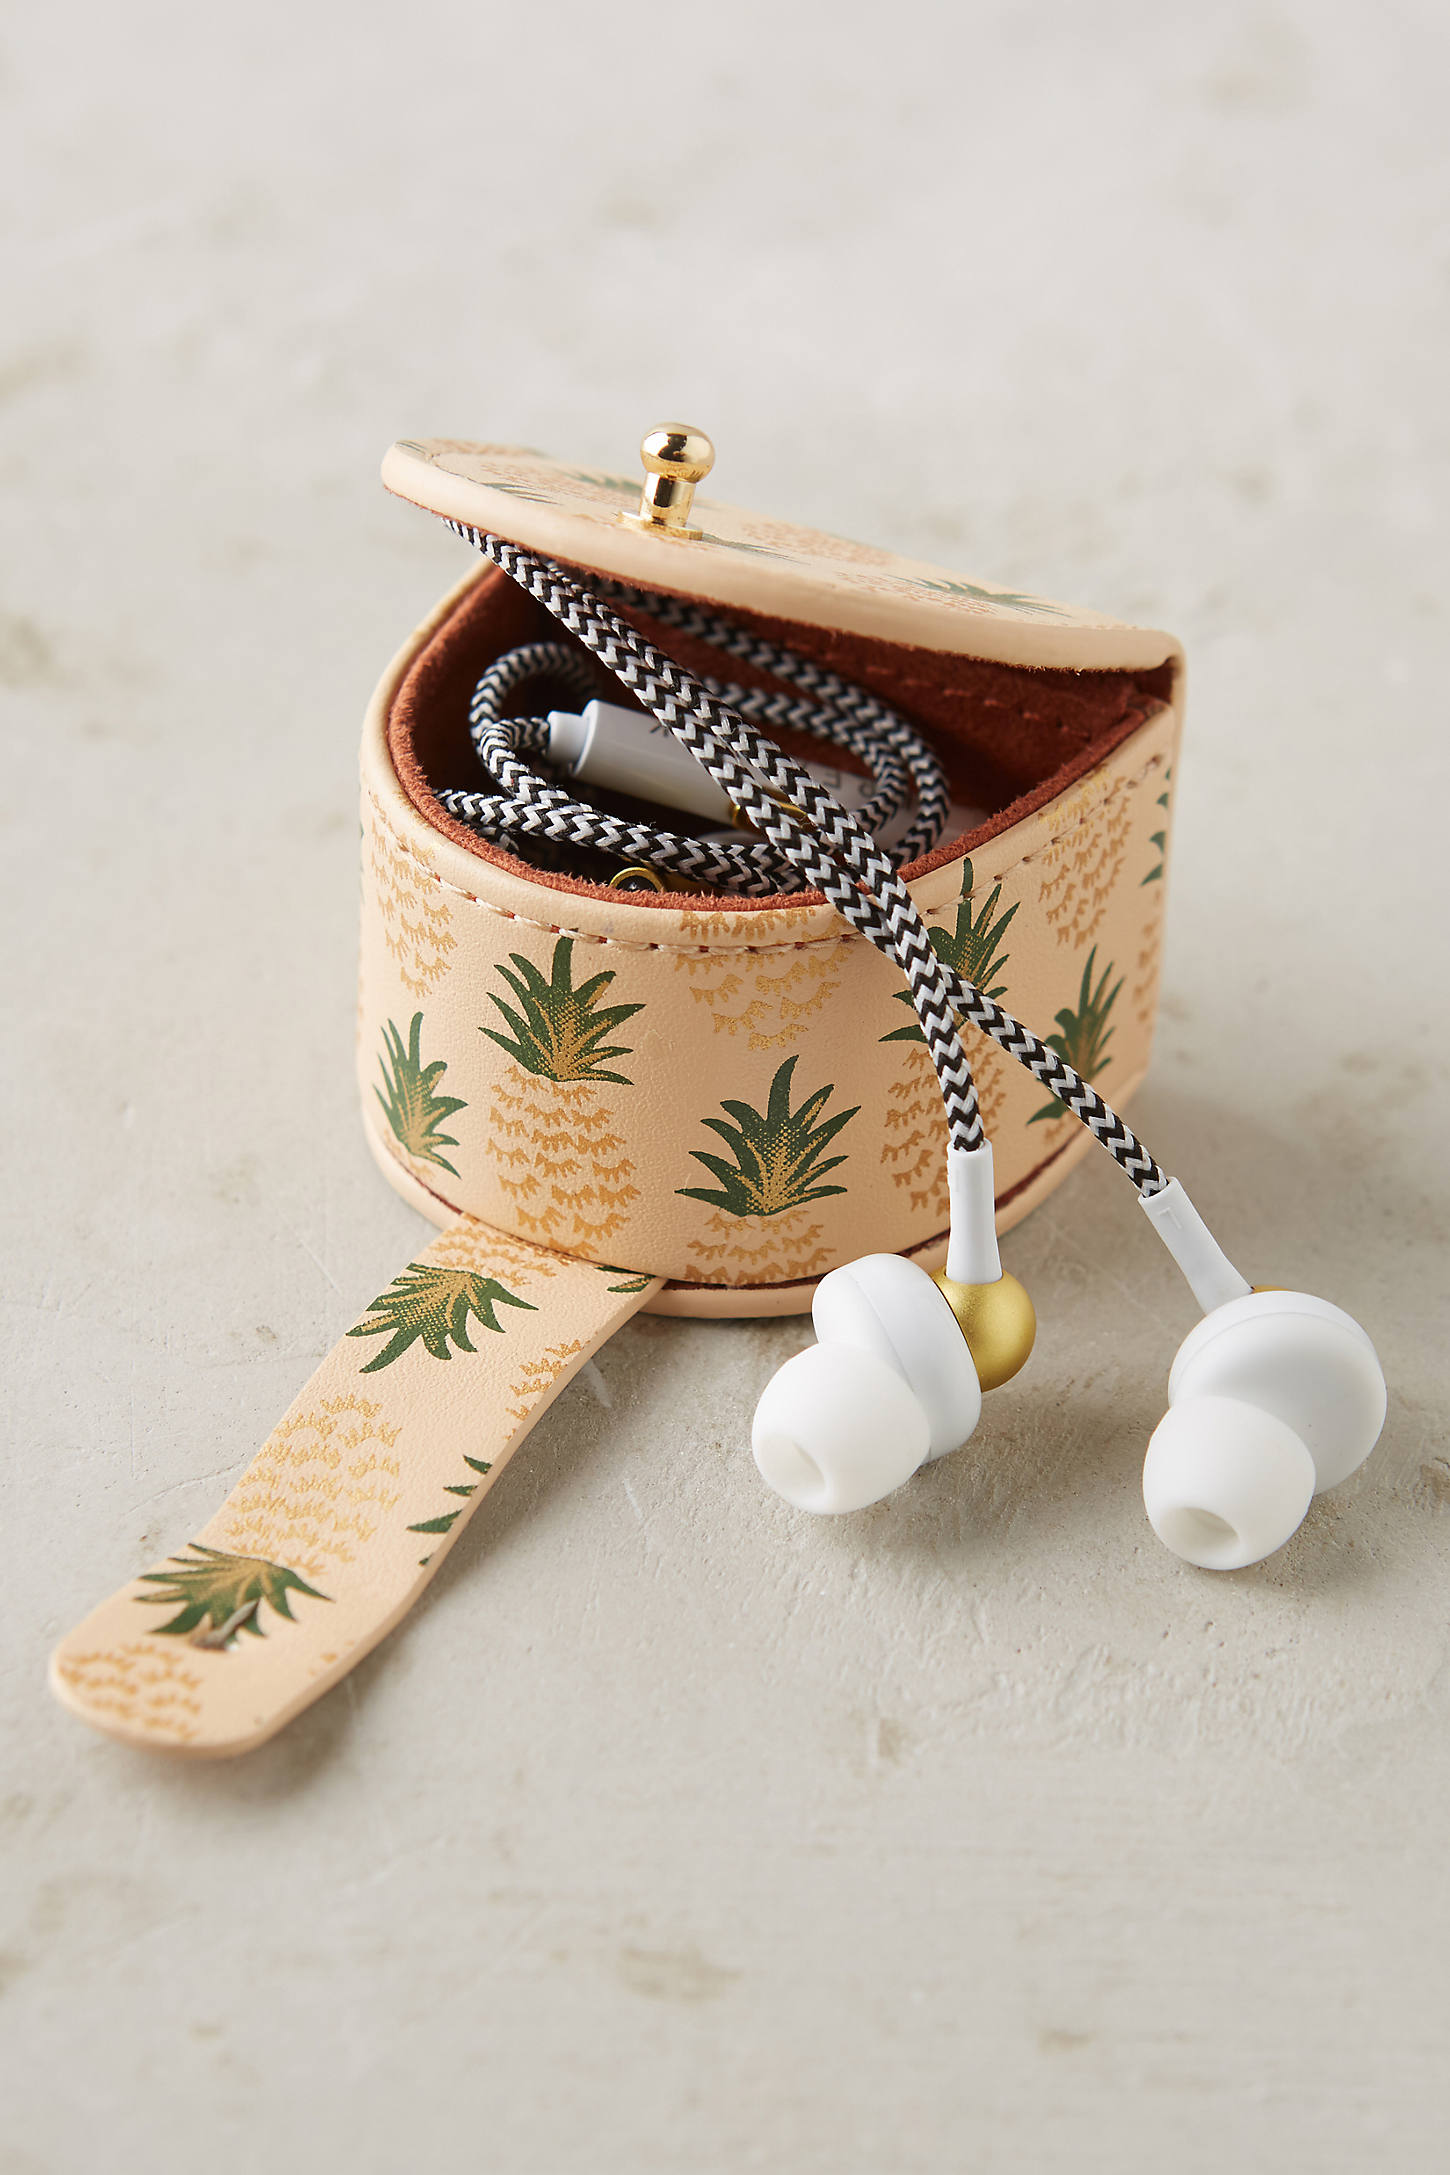 Blushing Pineapple Earbud Holder